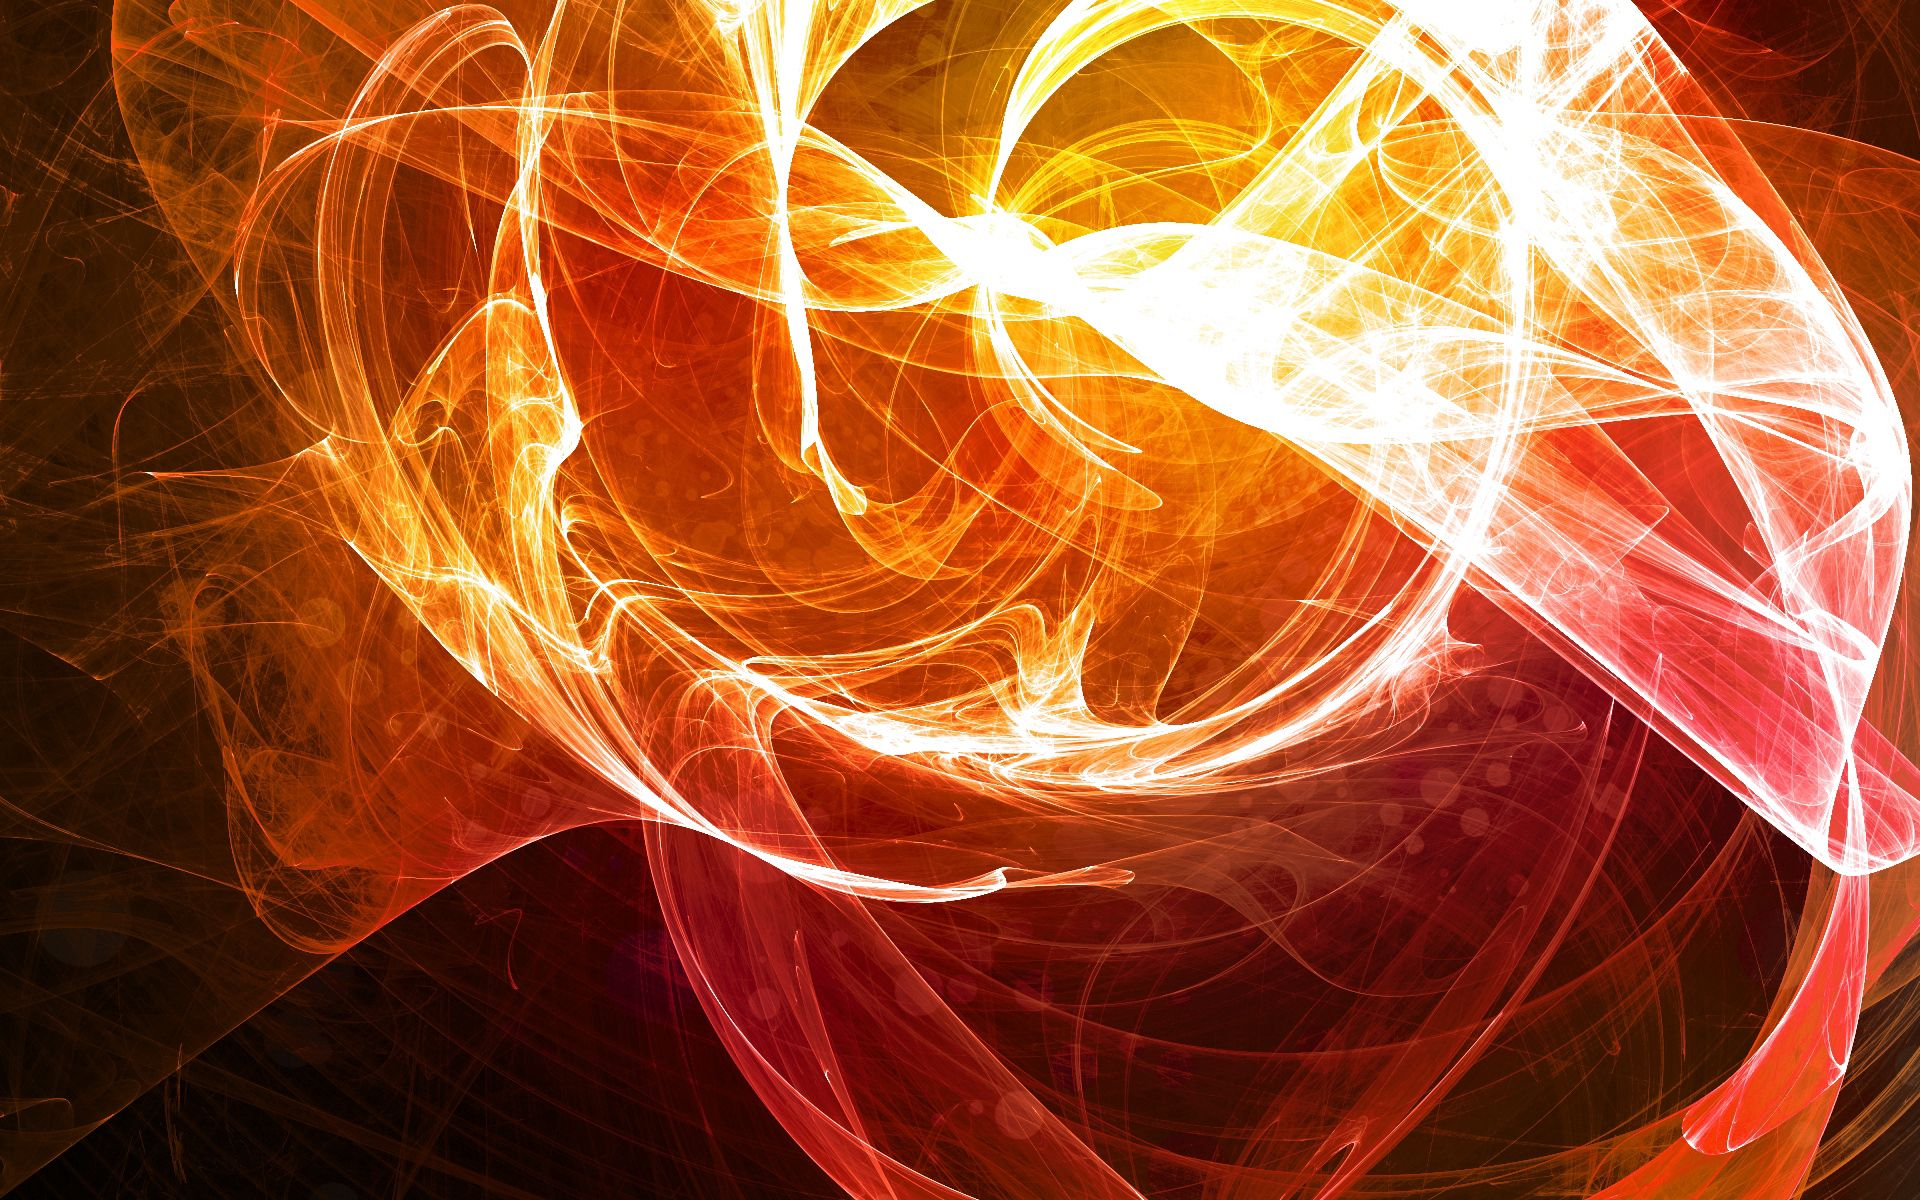 89472 download wallpaper Abstract, Shroud, Flame, Shine, Light, Fire, Smoke screensavers and pictures for free